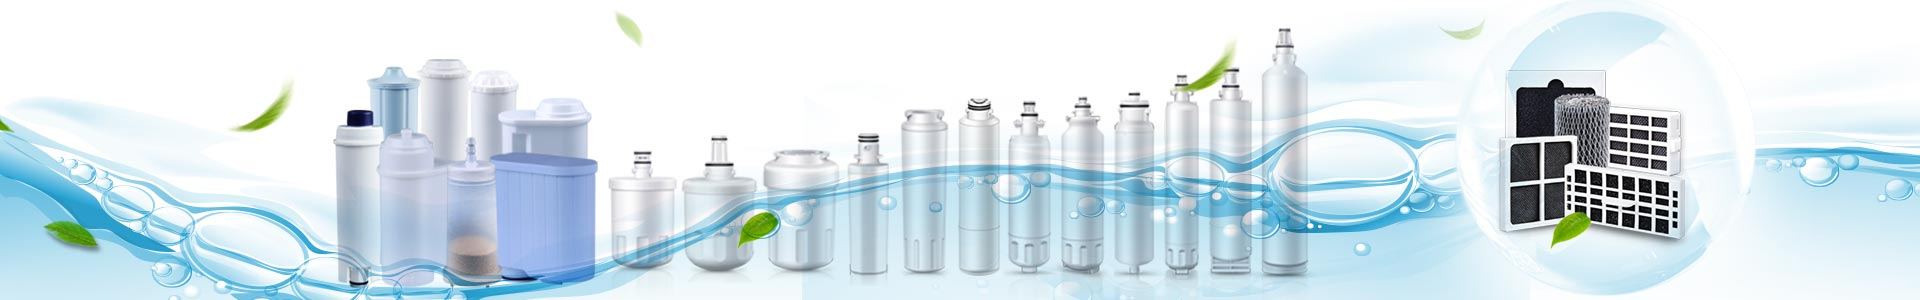 Water Filters For Home Appliances